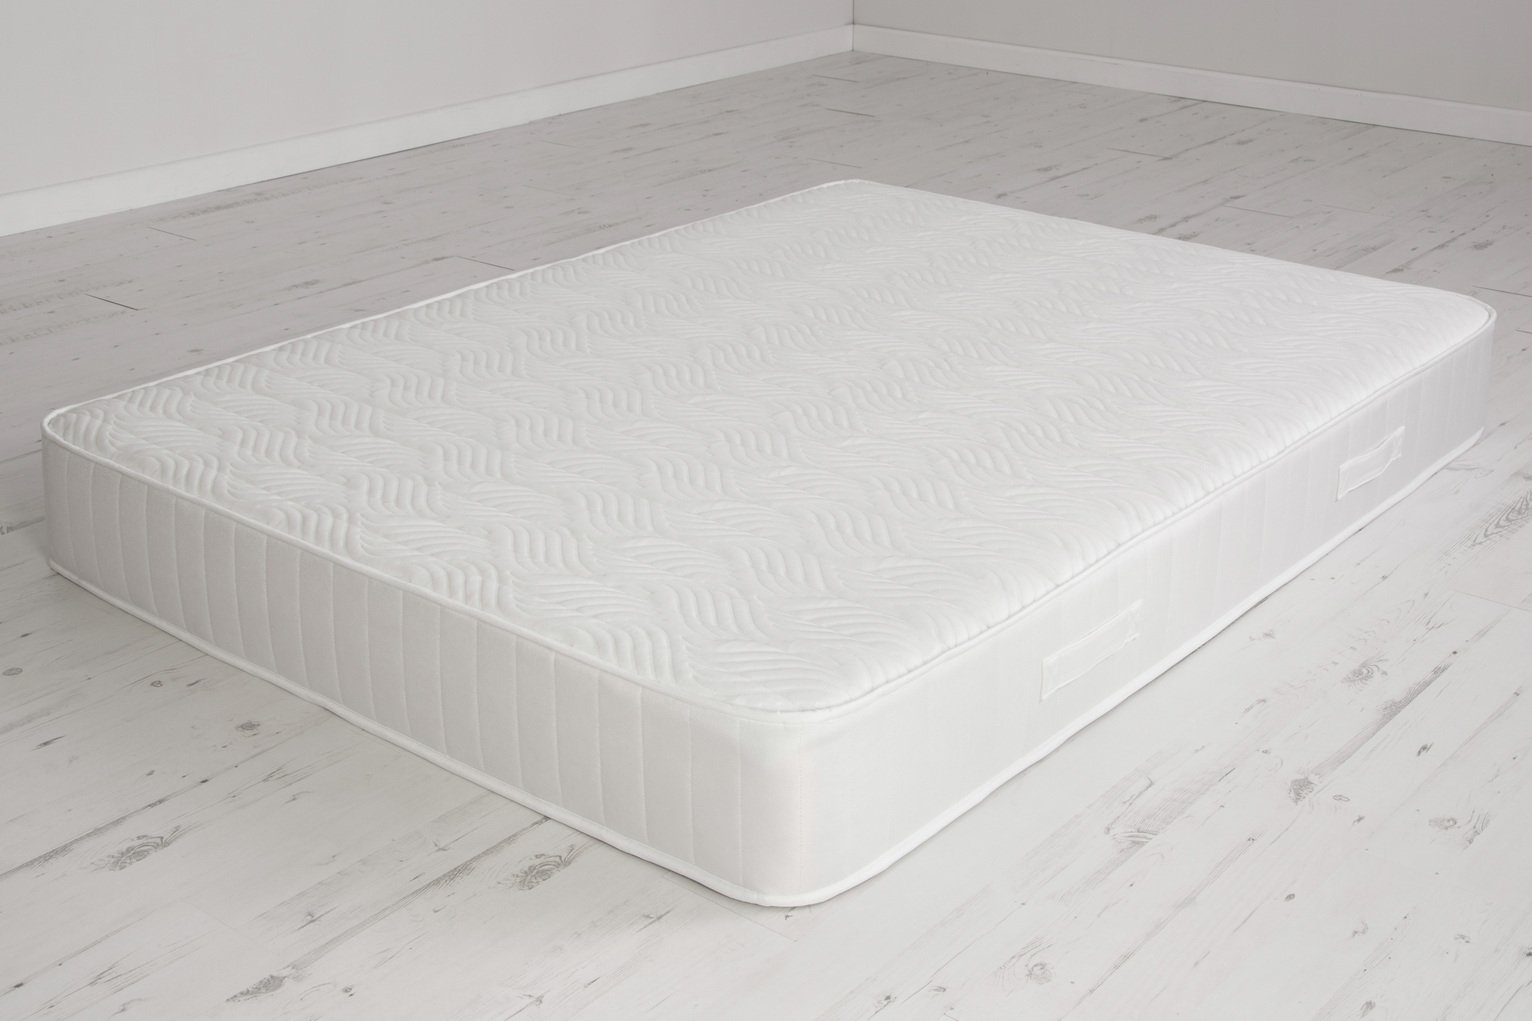 Airsprung Astall 1500 Pocket Memory Foam Kingsize Mattress